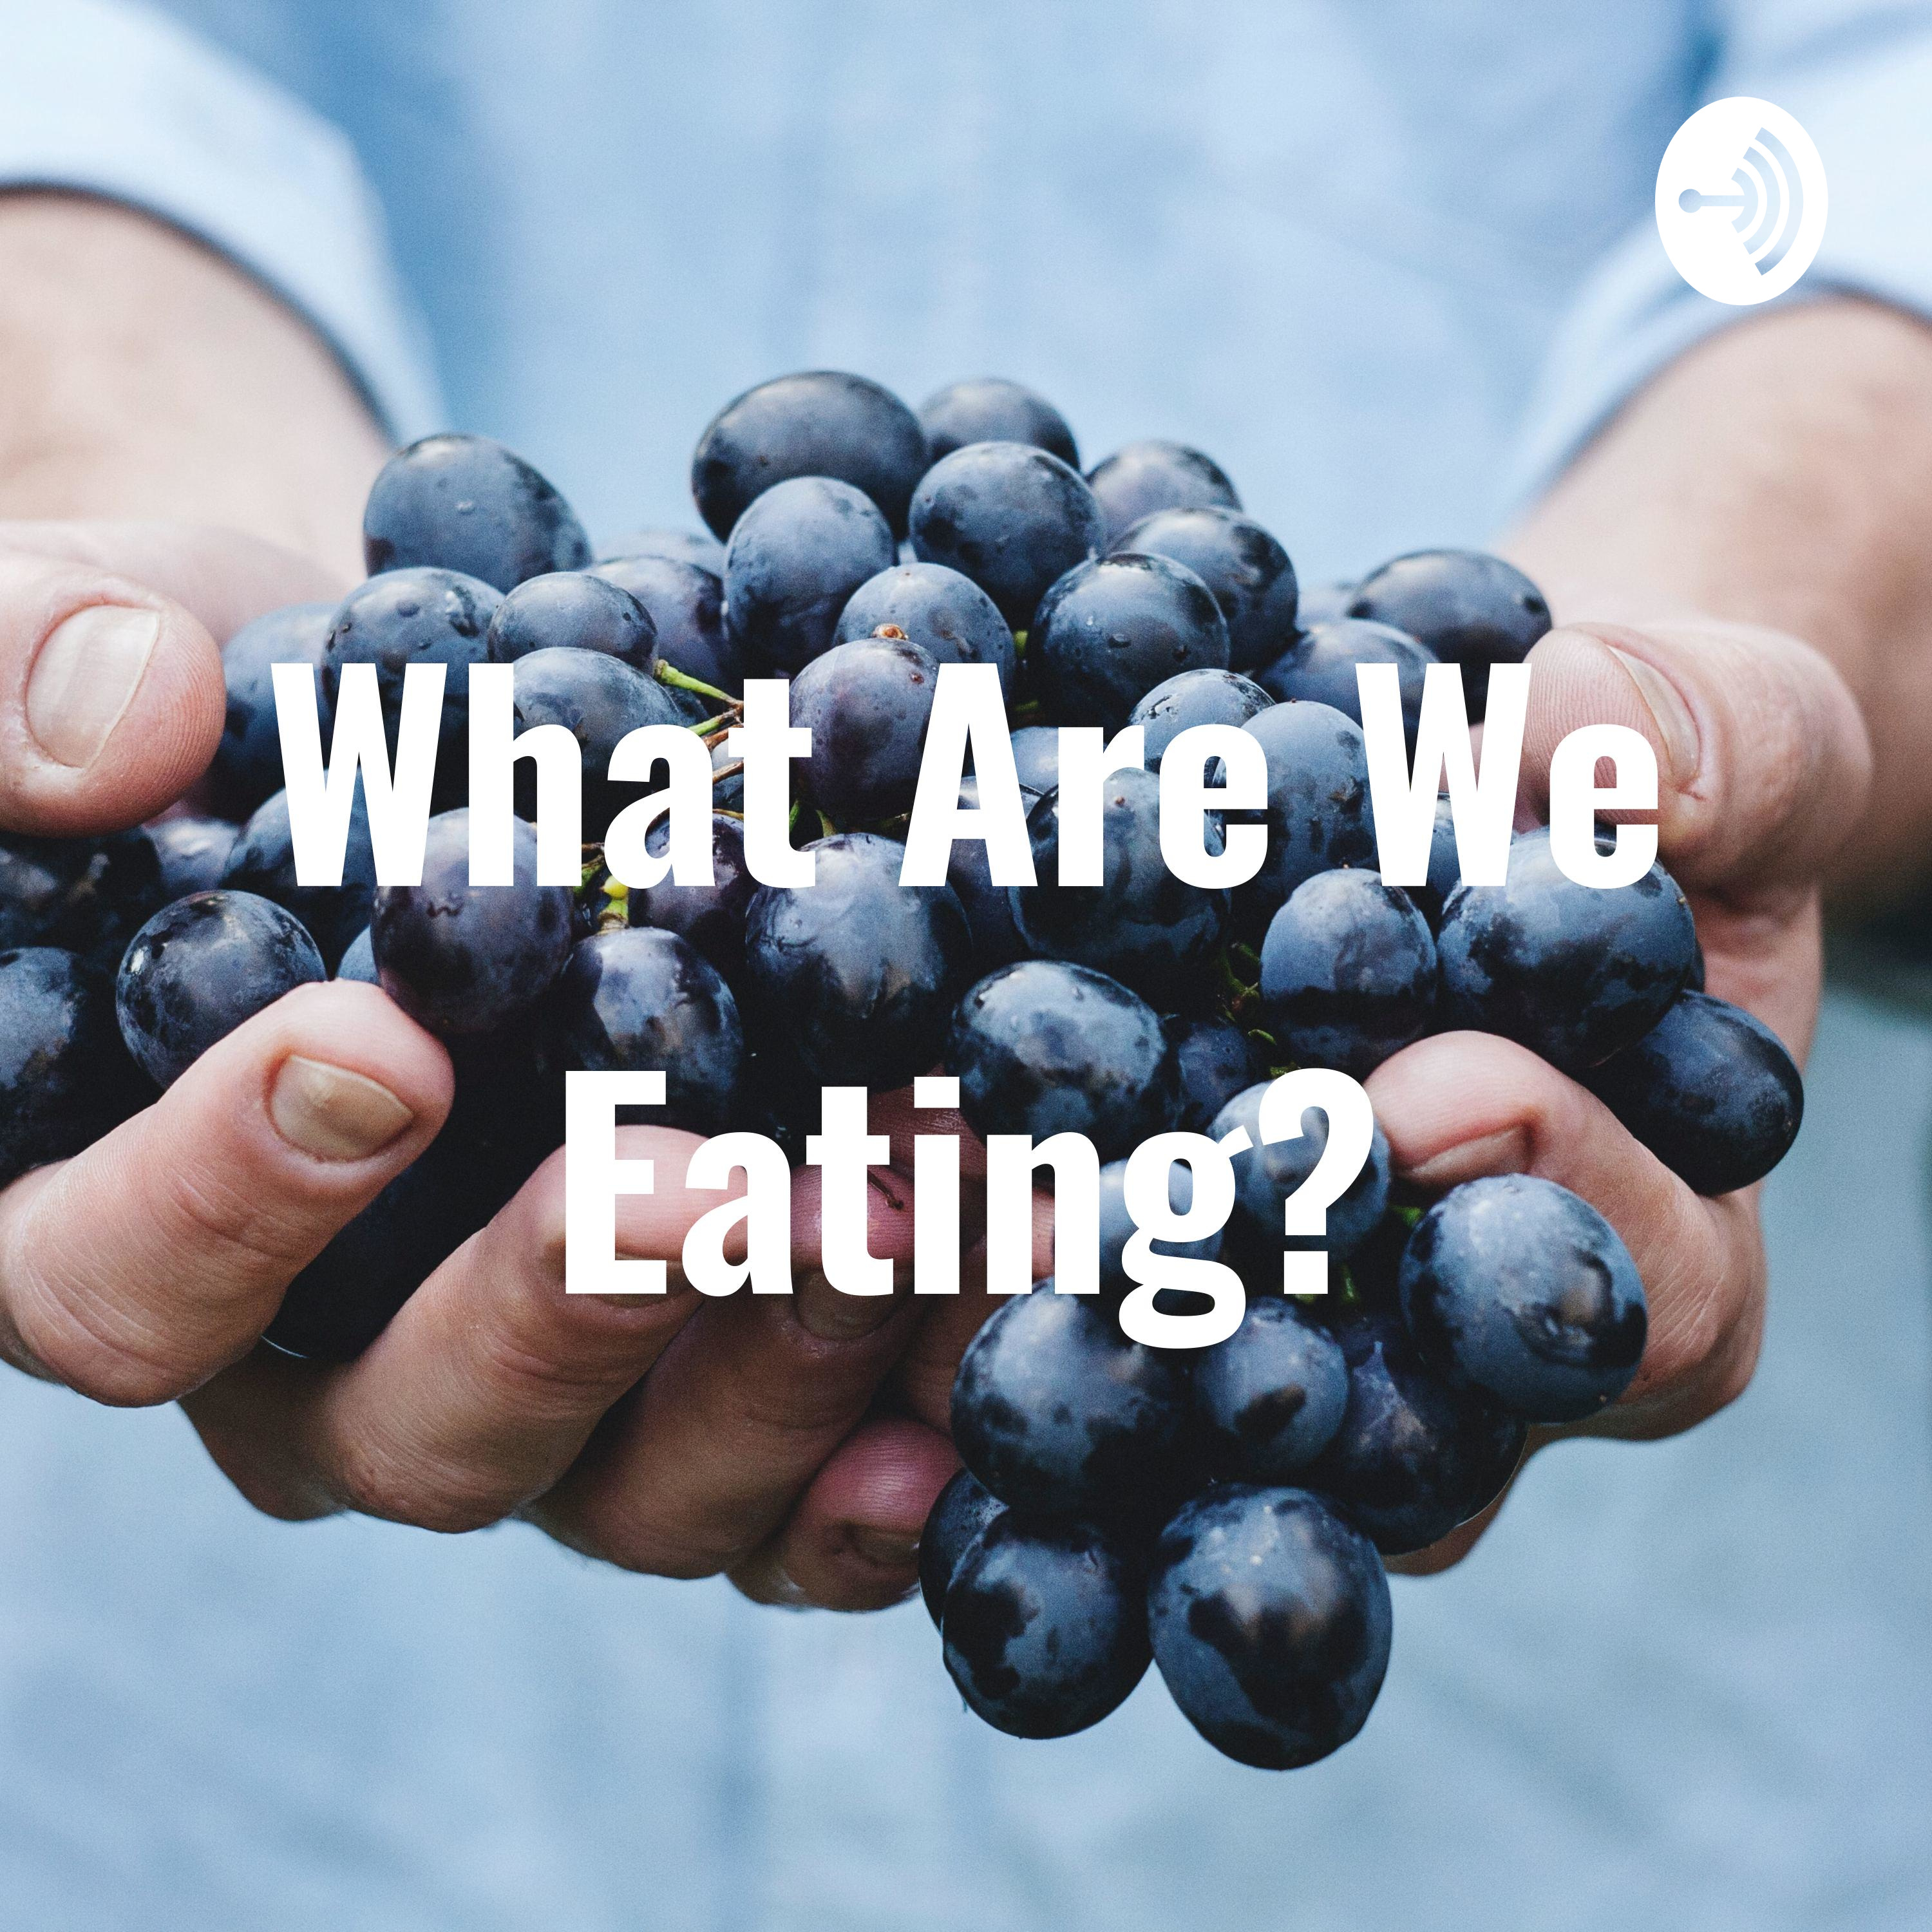 What Are We Eating?